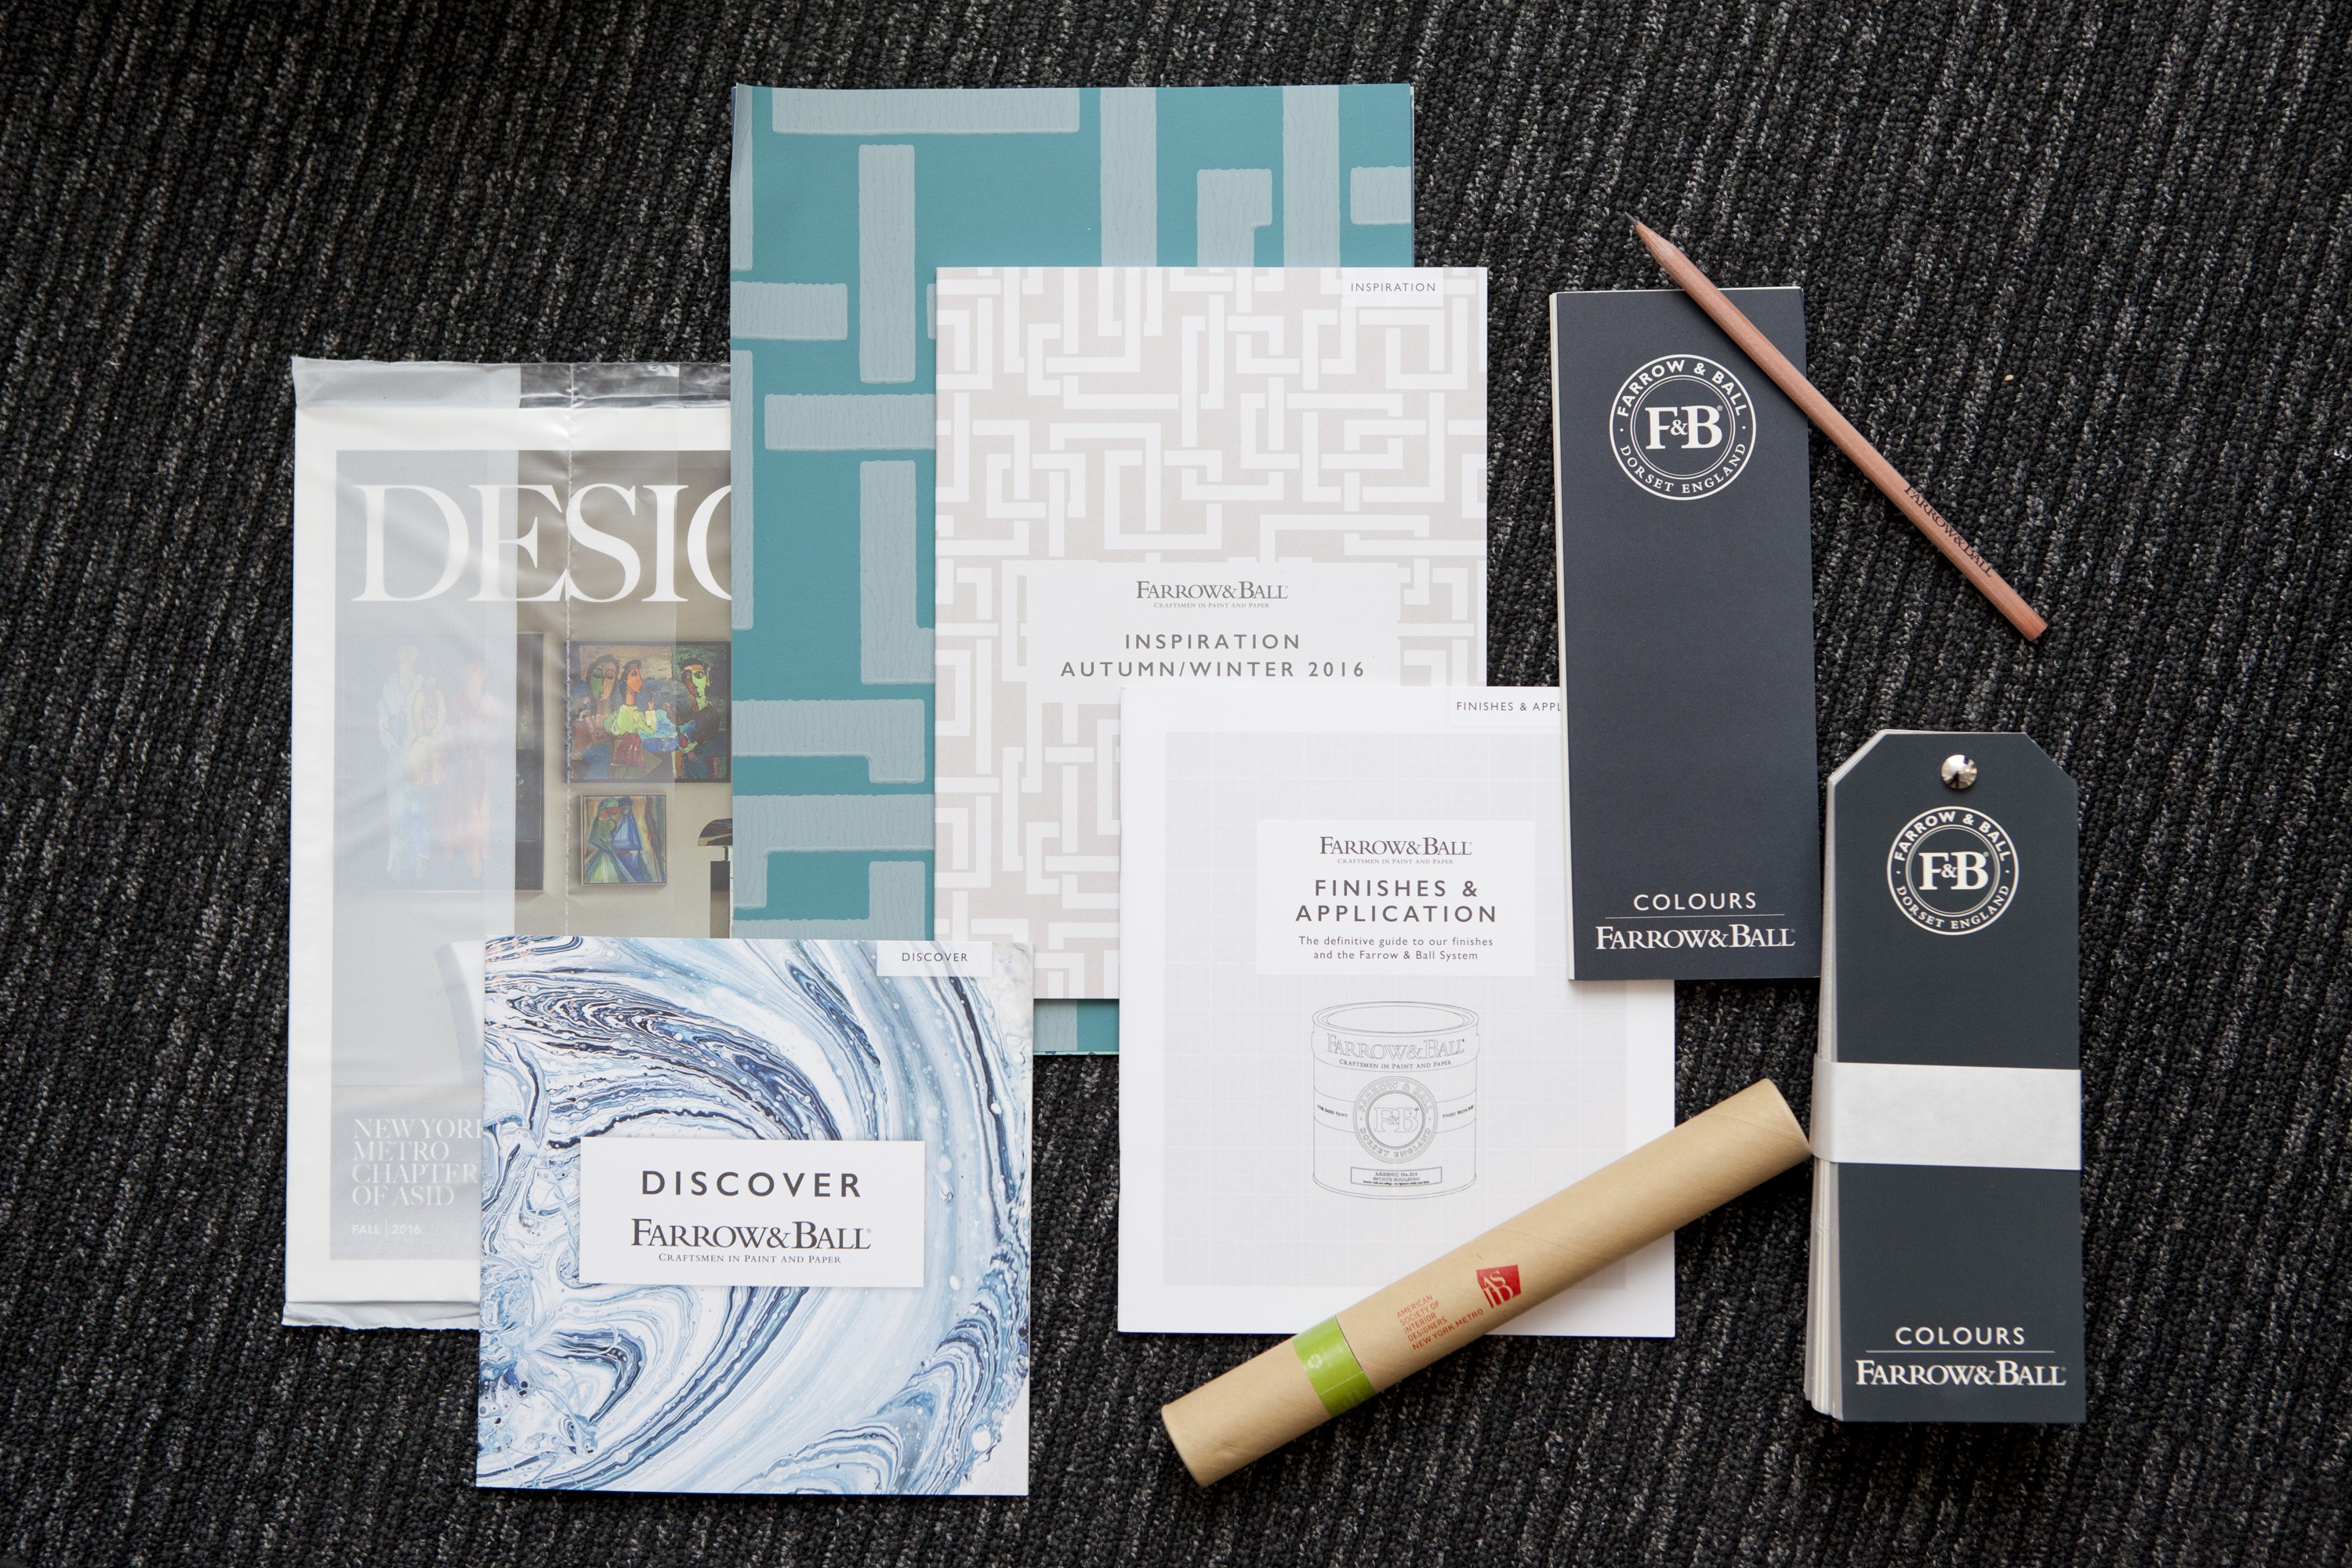 ASID and Farrow & Ball materials for guests